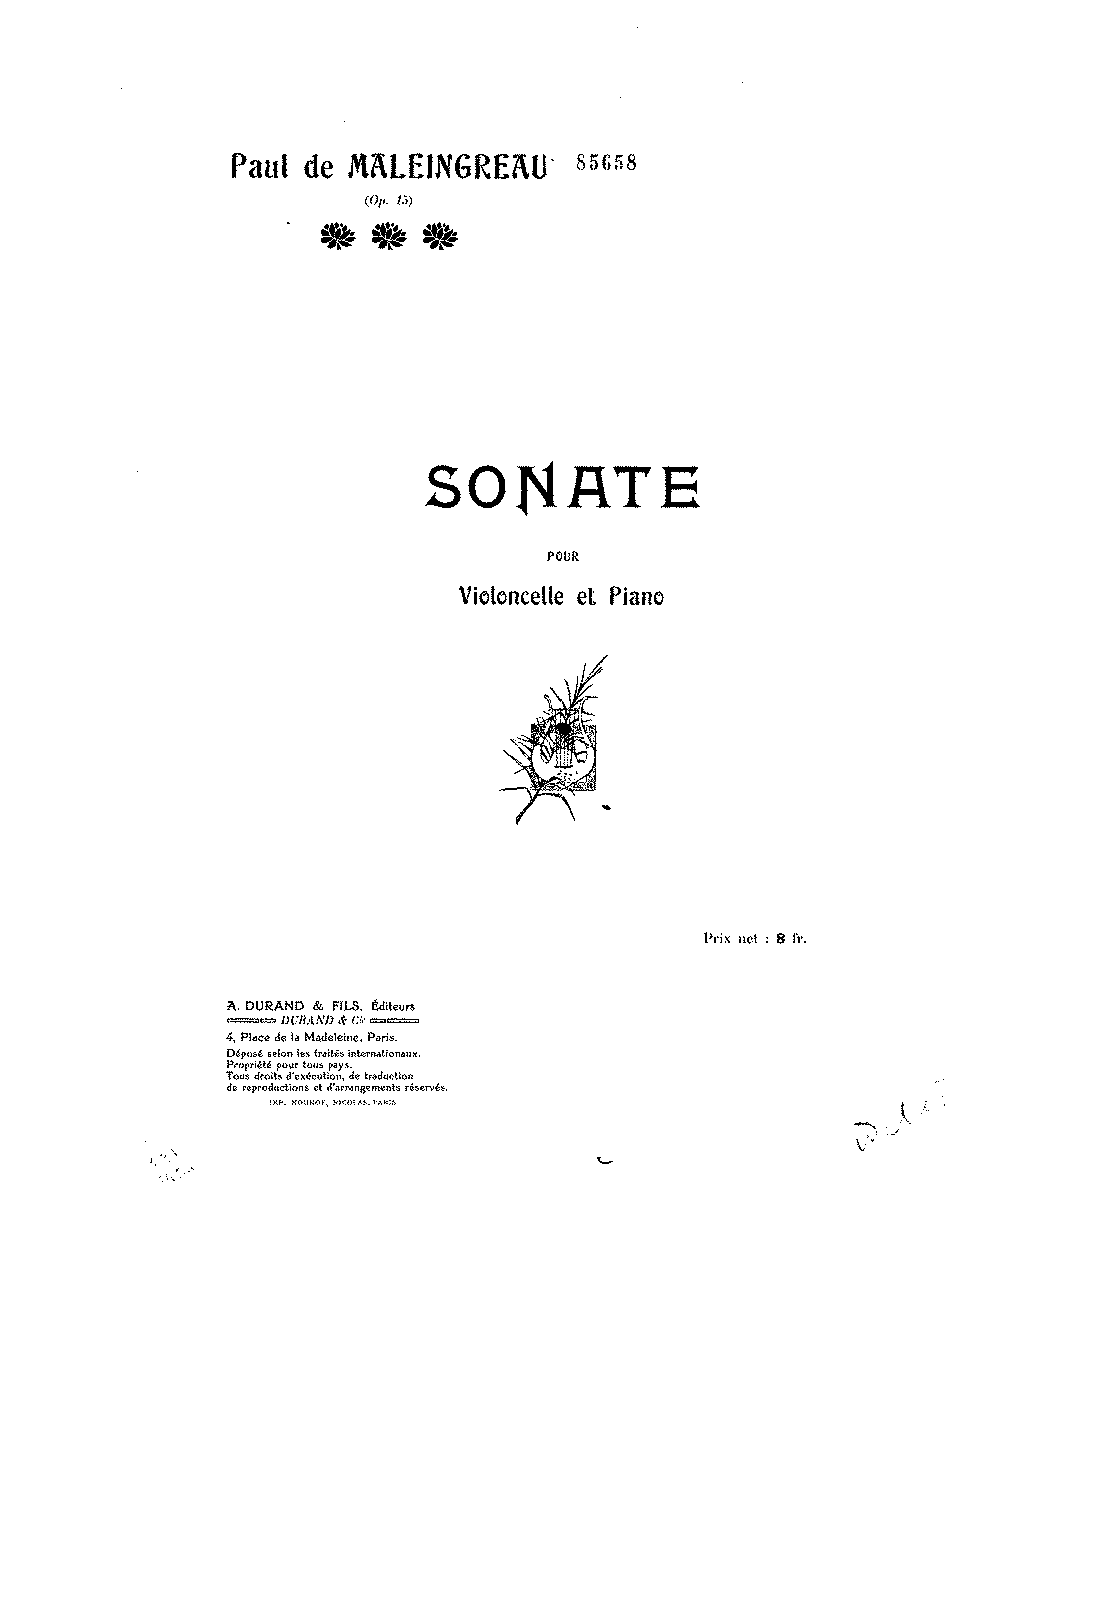 PMLP135170-Maleingreau - Sonata for Cello and Piano Op15 score.pdf